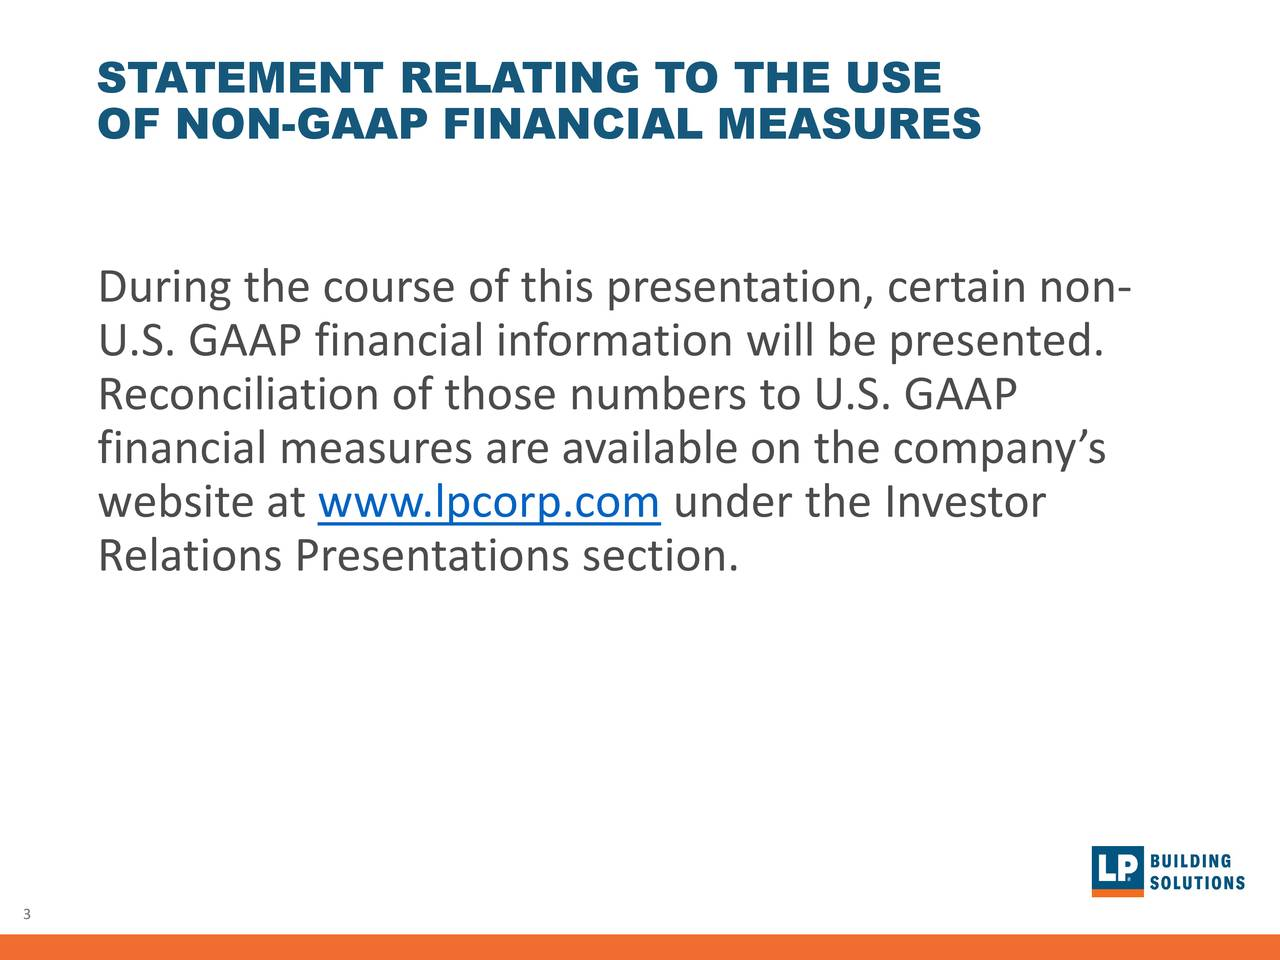 OF NON-GAAP FINANCIAL MEASURES During the course of this presentation, certain non- U.S. GAAP financial information will be presented. Reconciliation of those numbers to U.S. GAAP financial measures are available on the company's website atwww.lpcorp.com under the Investor Relations Presentations section. 3